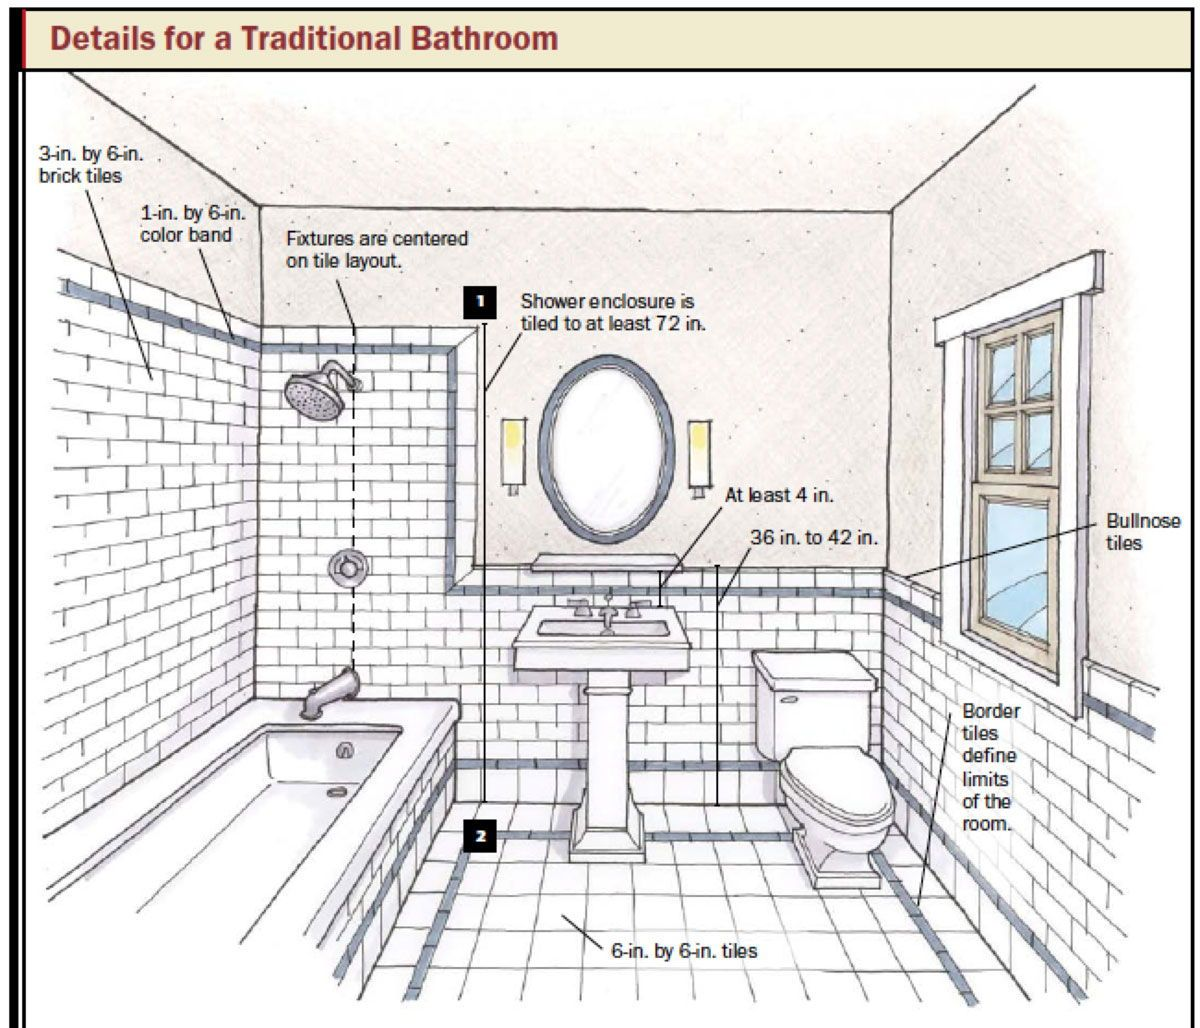 20 Bathroom Remodel Before And After Ideas How To Remodel Your Bathroom Tips In 2020 Small Bathroom Layout Bathroom Floor Plans Bathroom Layout